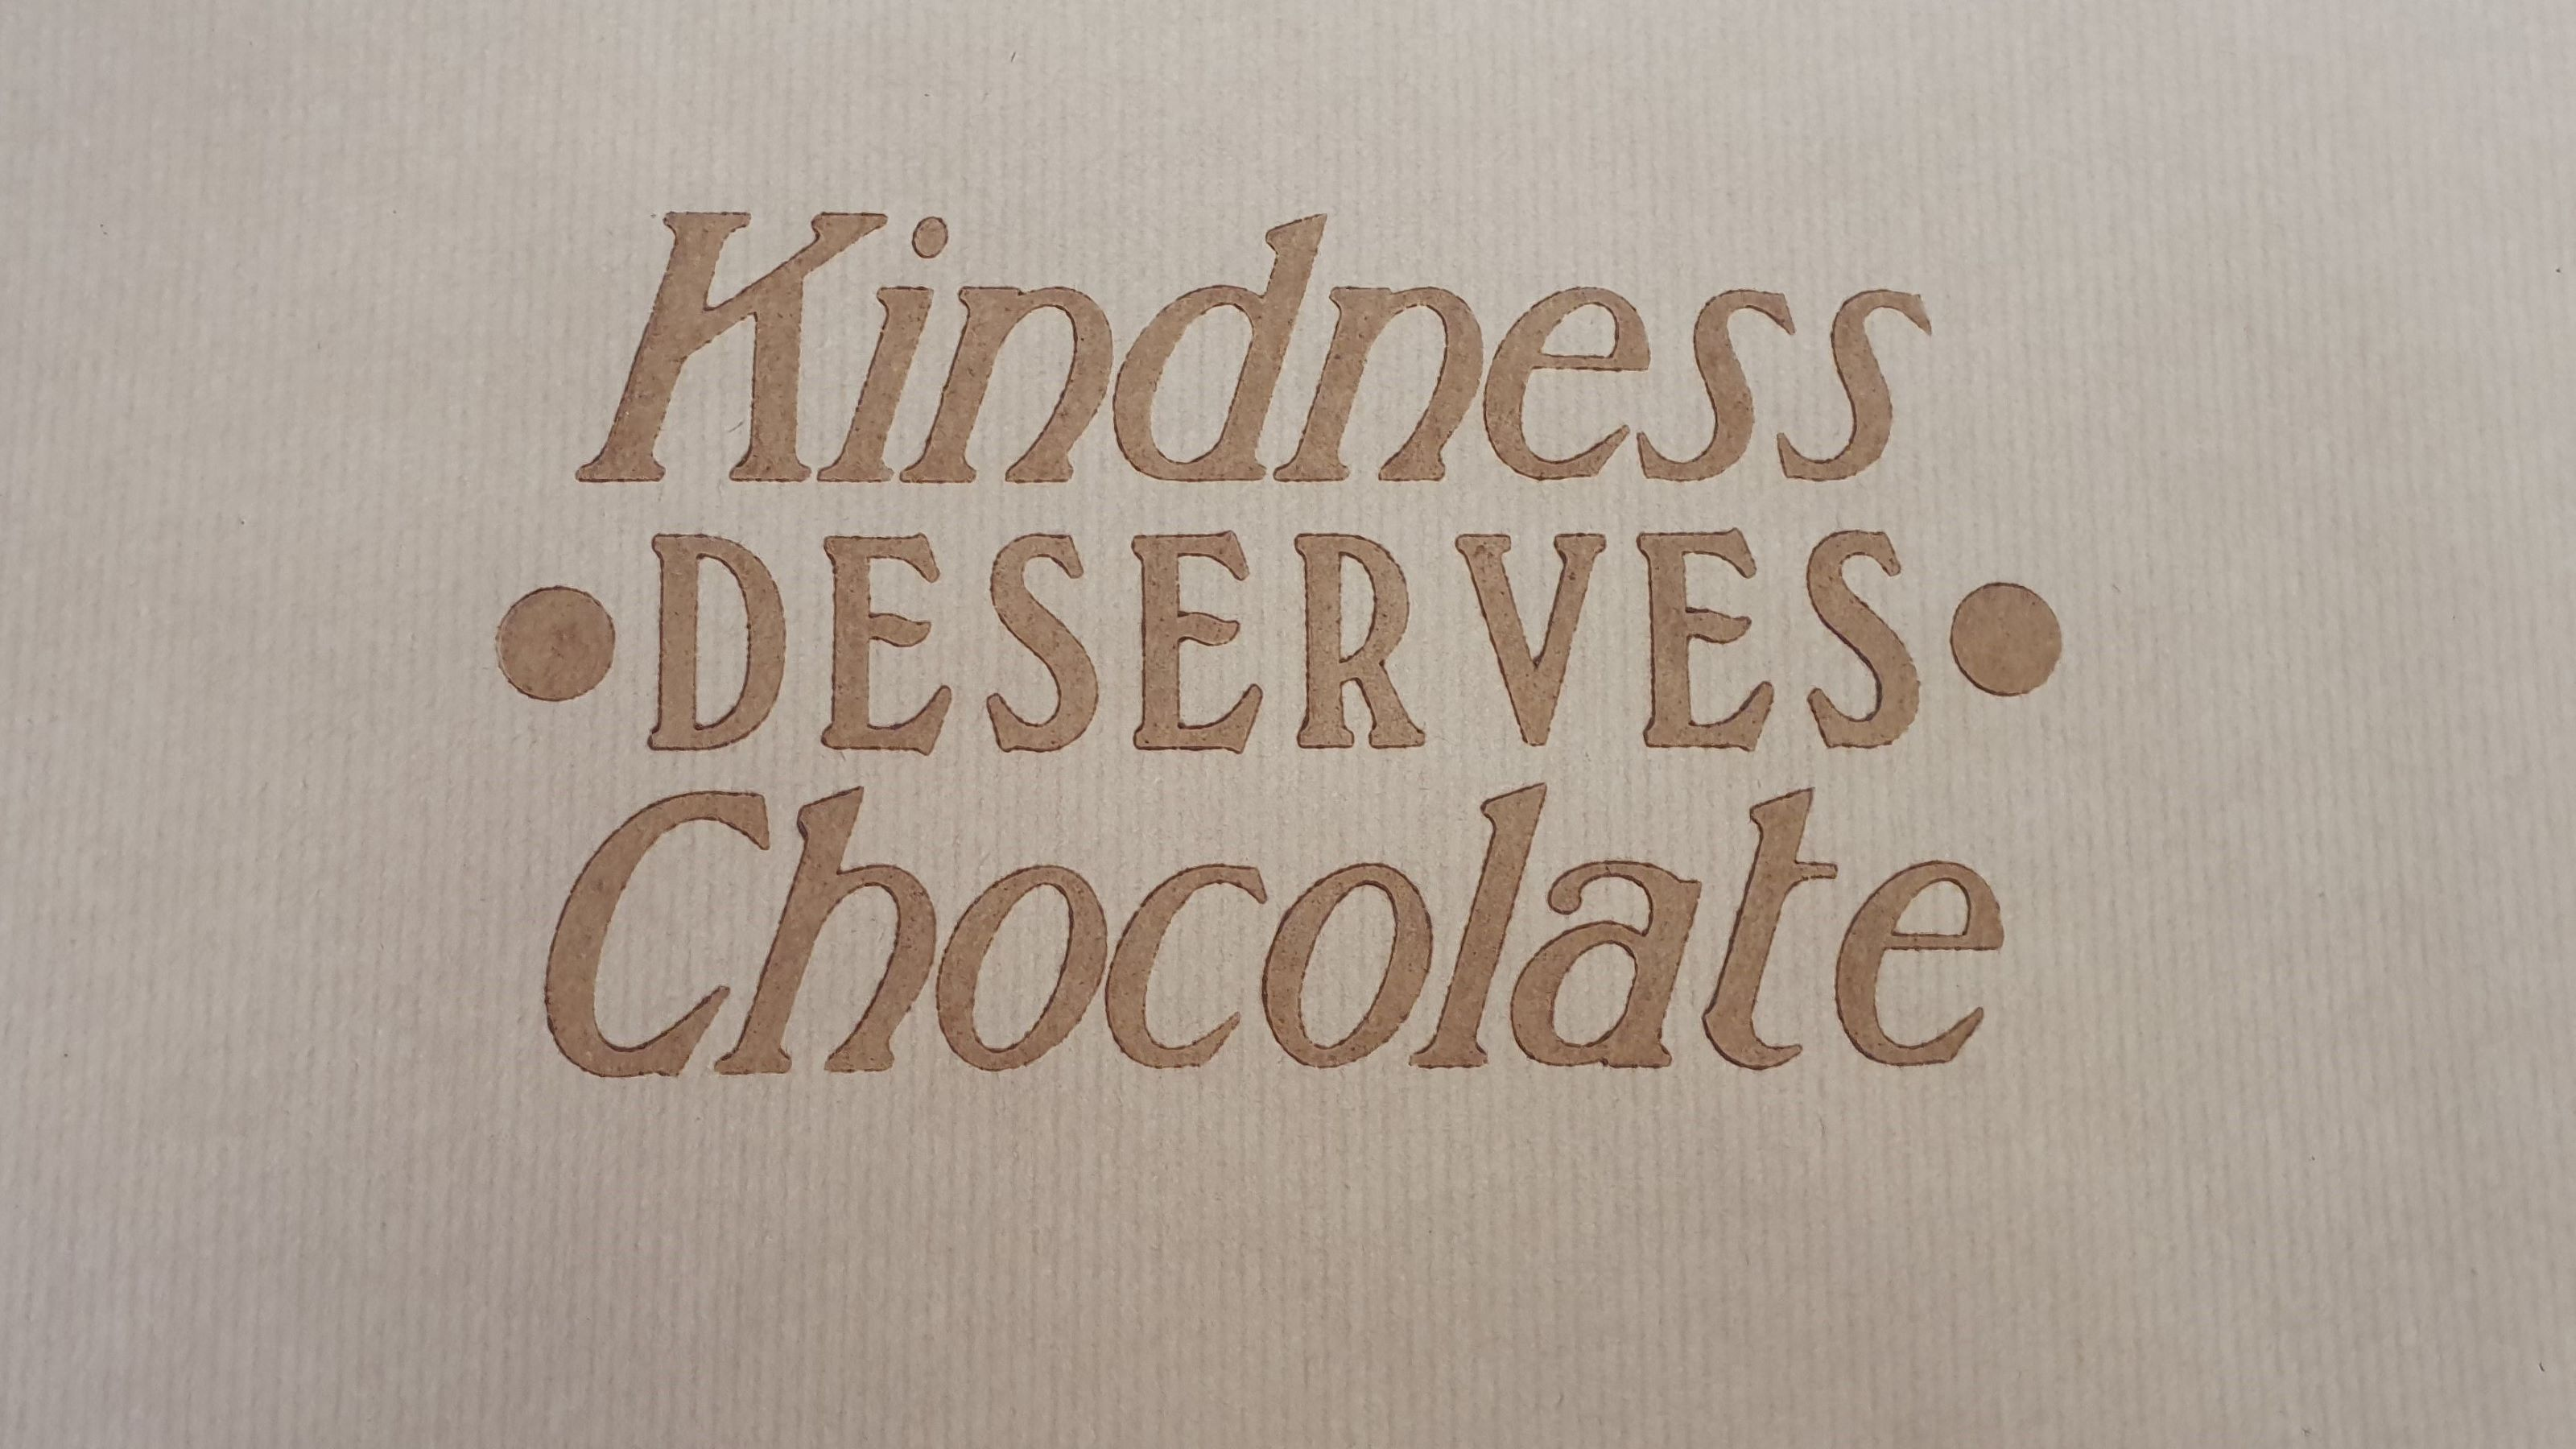 """""""Kindness deserves chocolate"""" printed with chocolate as ink."""